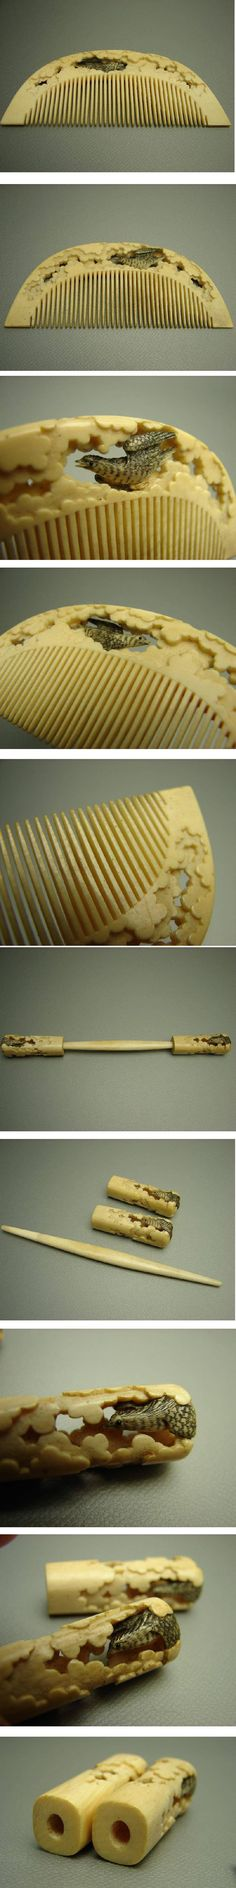 Ivory comb and Kôgai